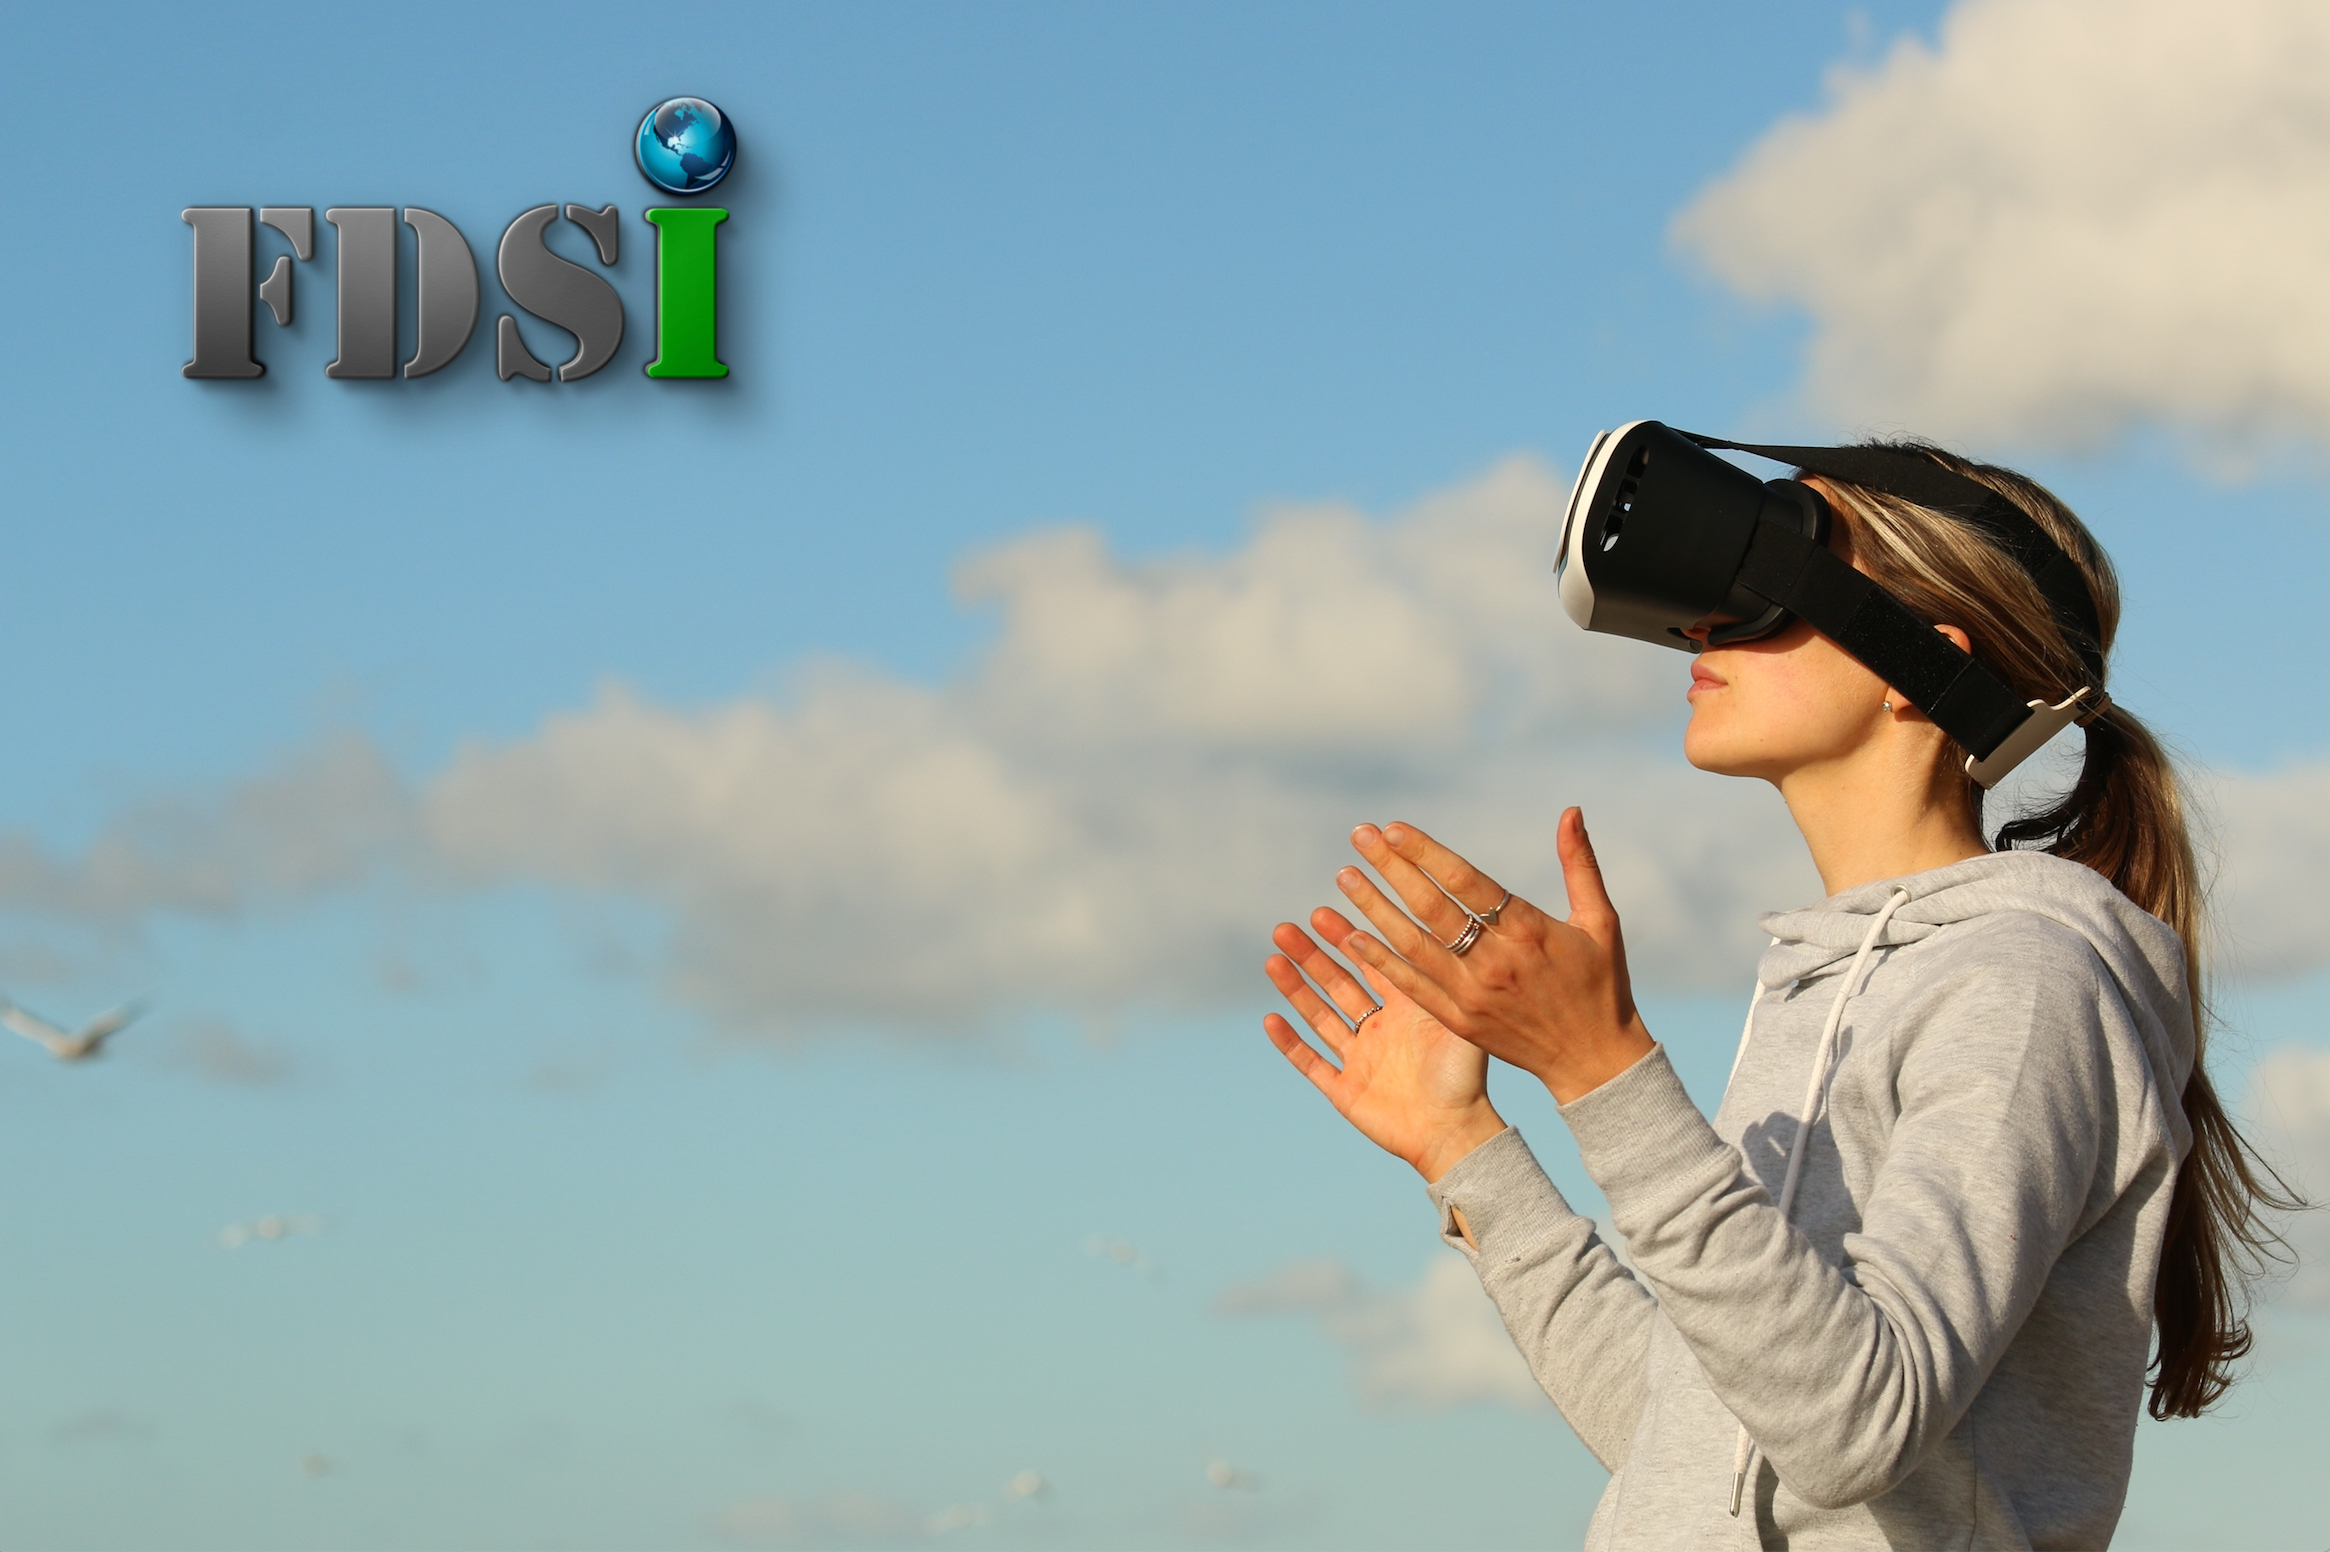 VIRTUAL REALITY MARKETING & DESIGN